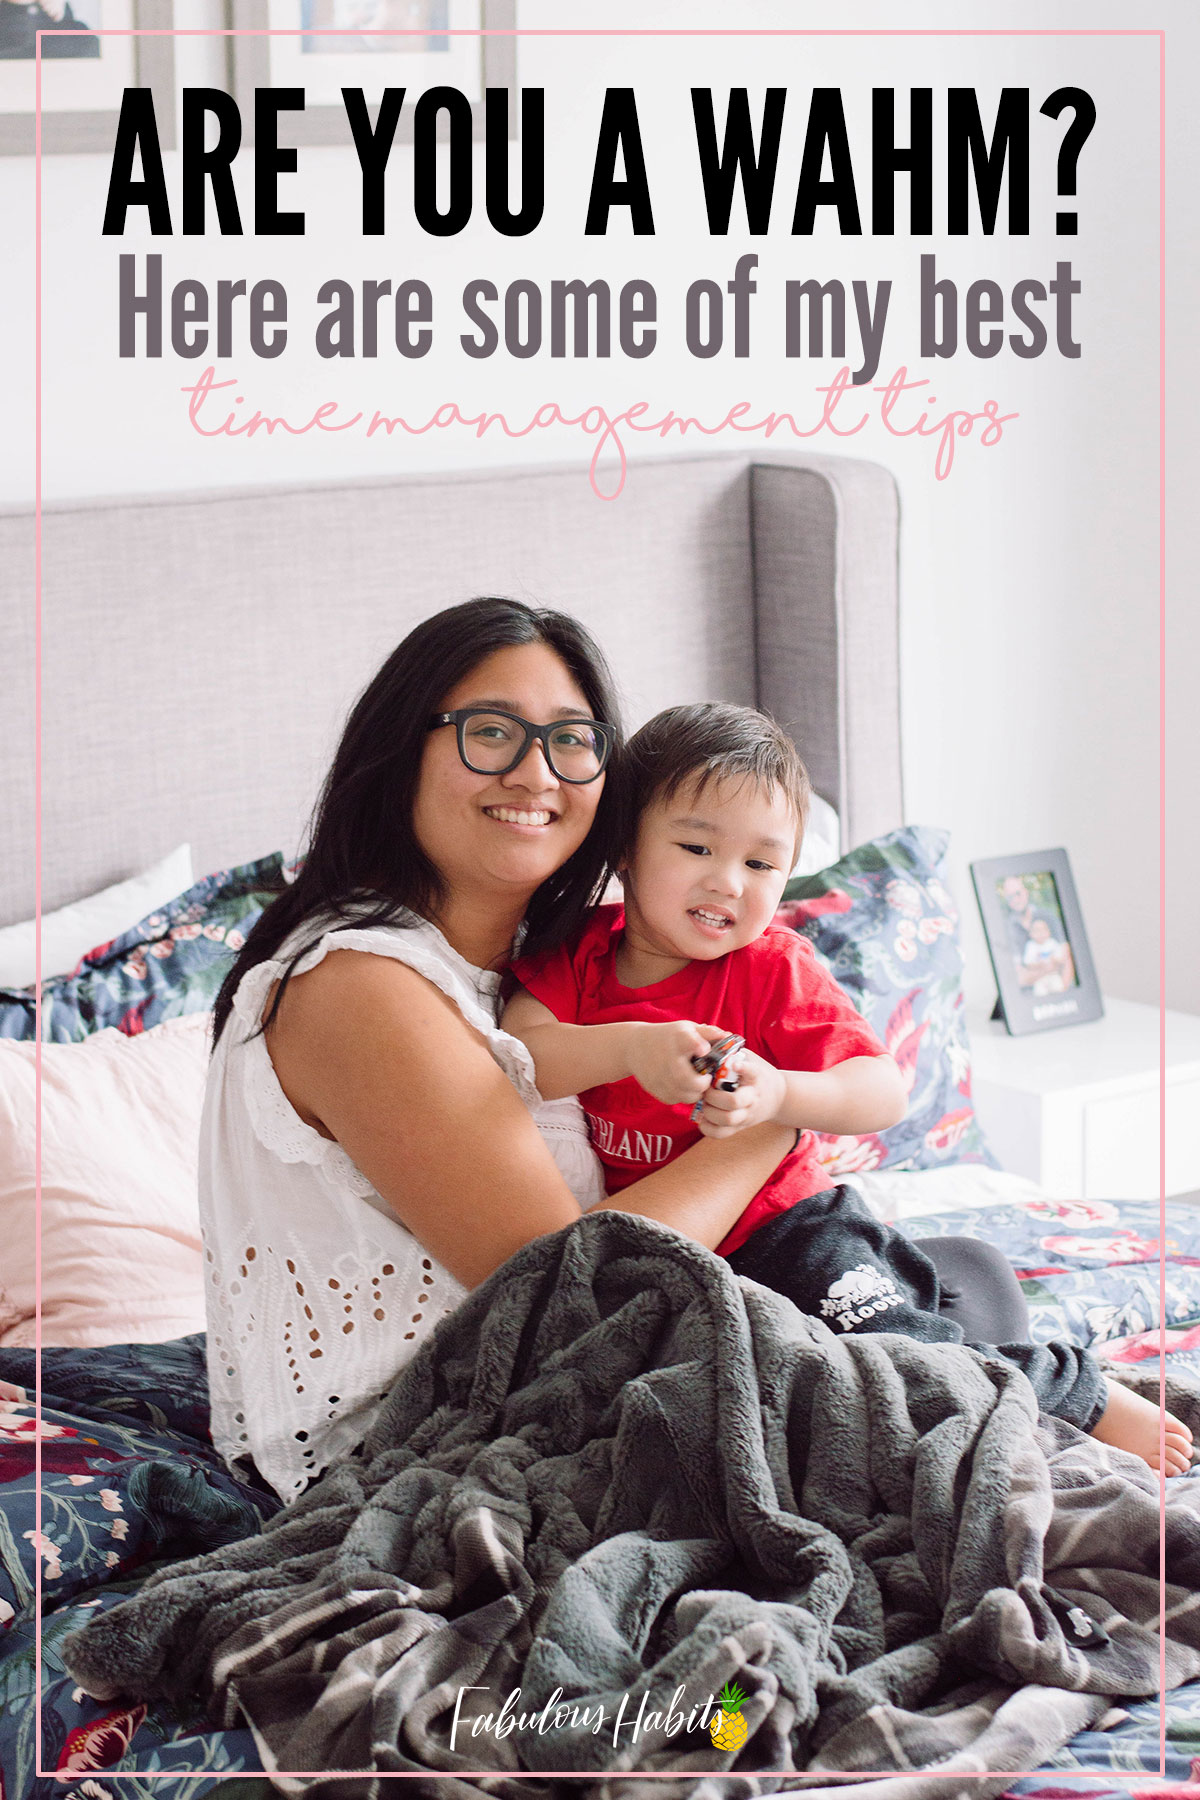 Are you a WAHM? Time management is key for making sure everything on your to-do list gets crossed off. I'm here to share my best time management tips - perfect for any busy parent! #WAHM